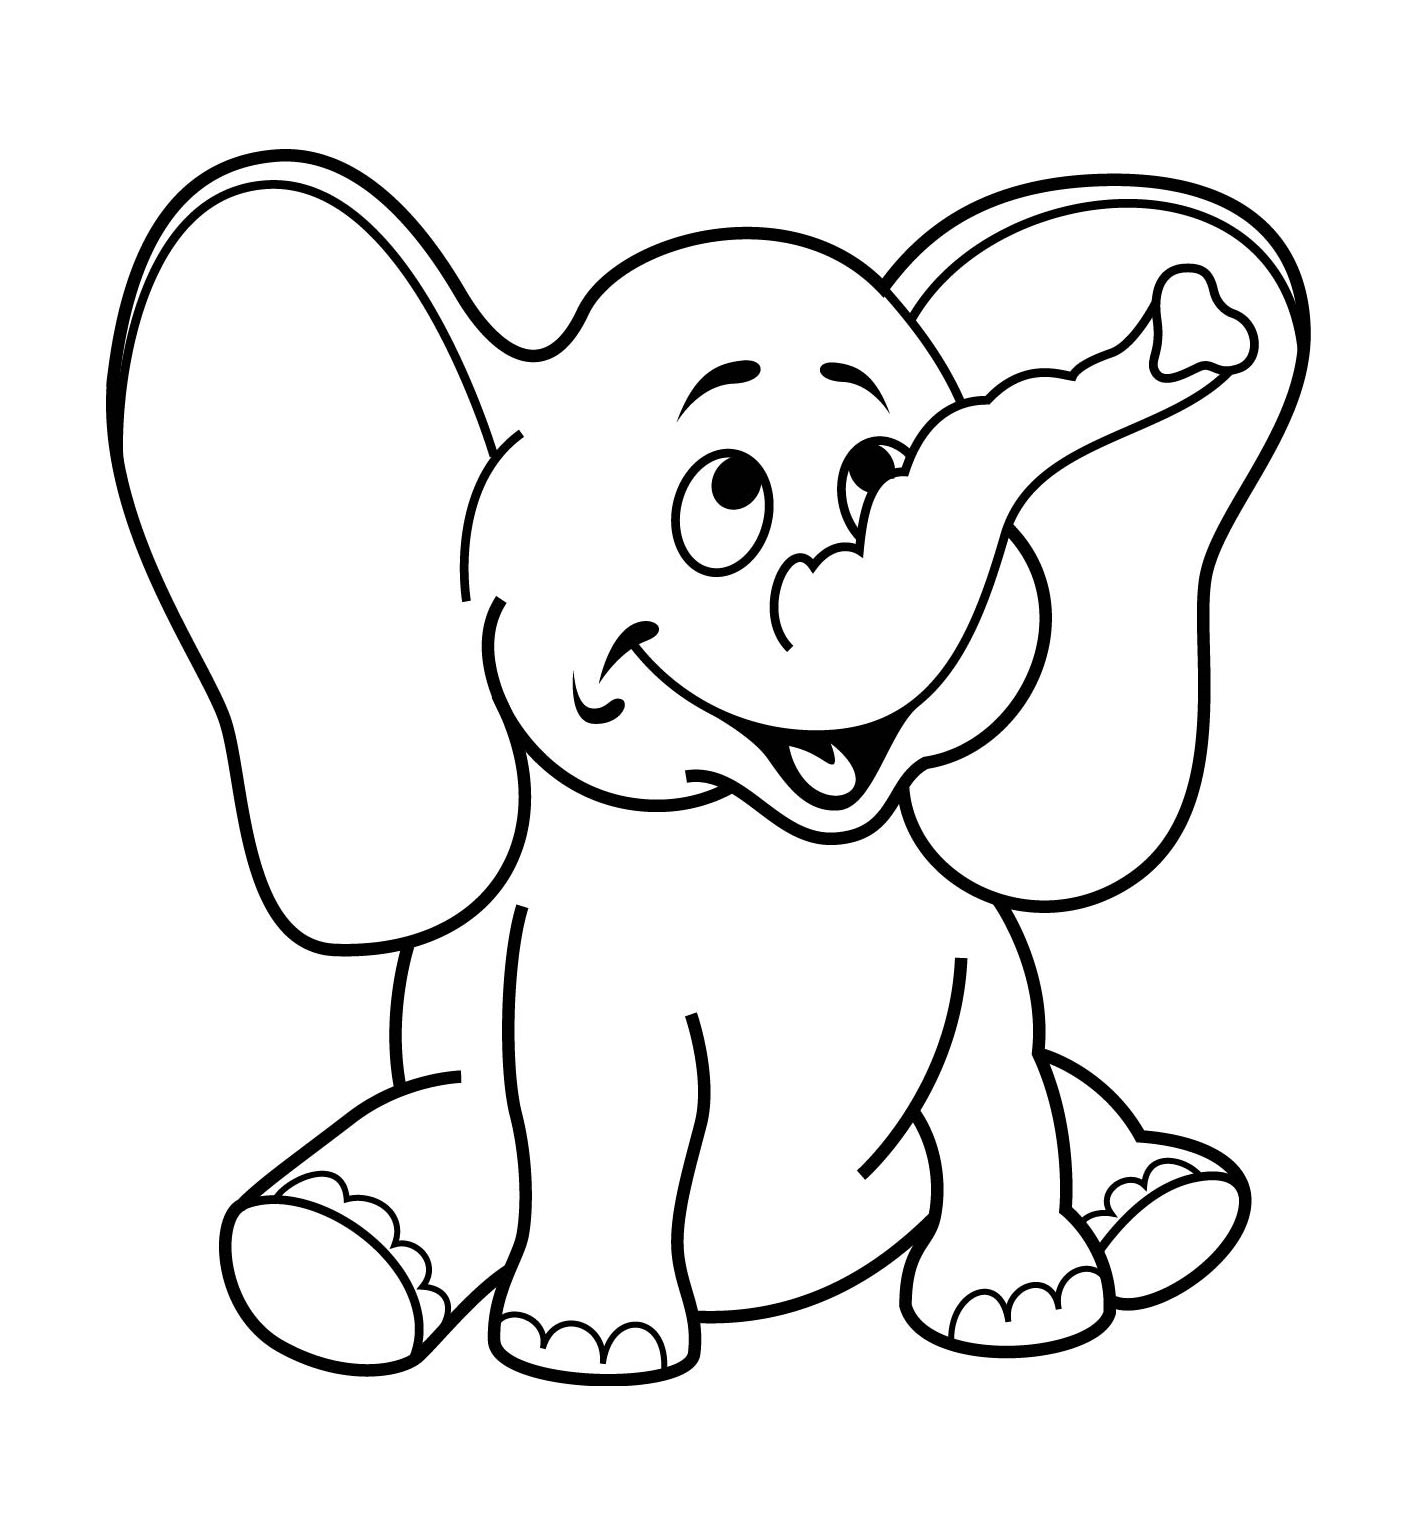 1417x1535 Superior Simple Coloring Pages For Year Olds